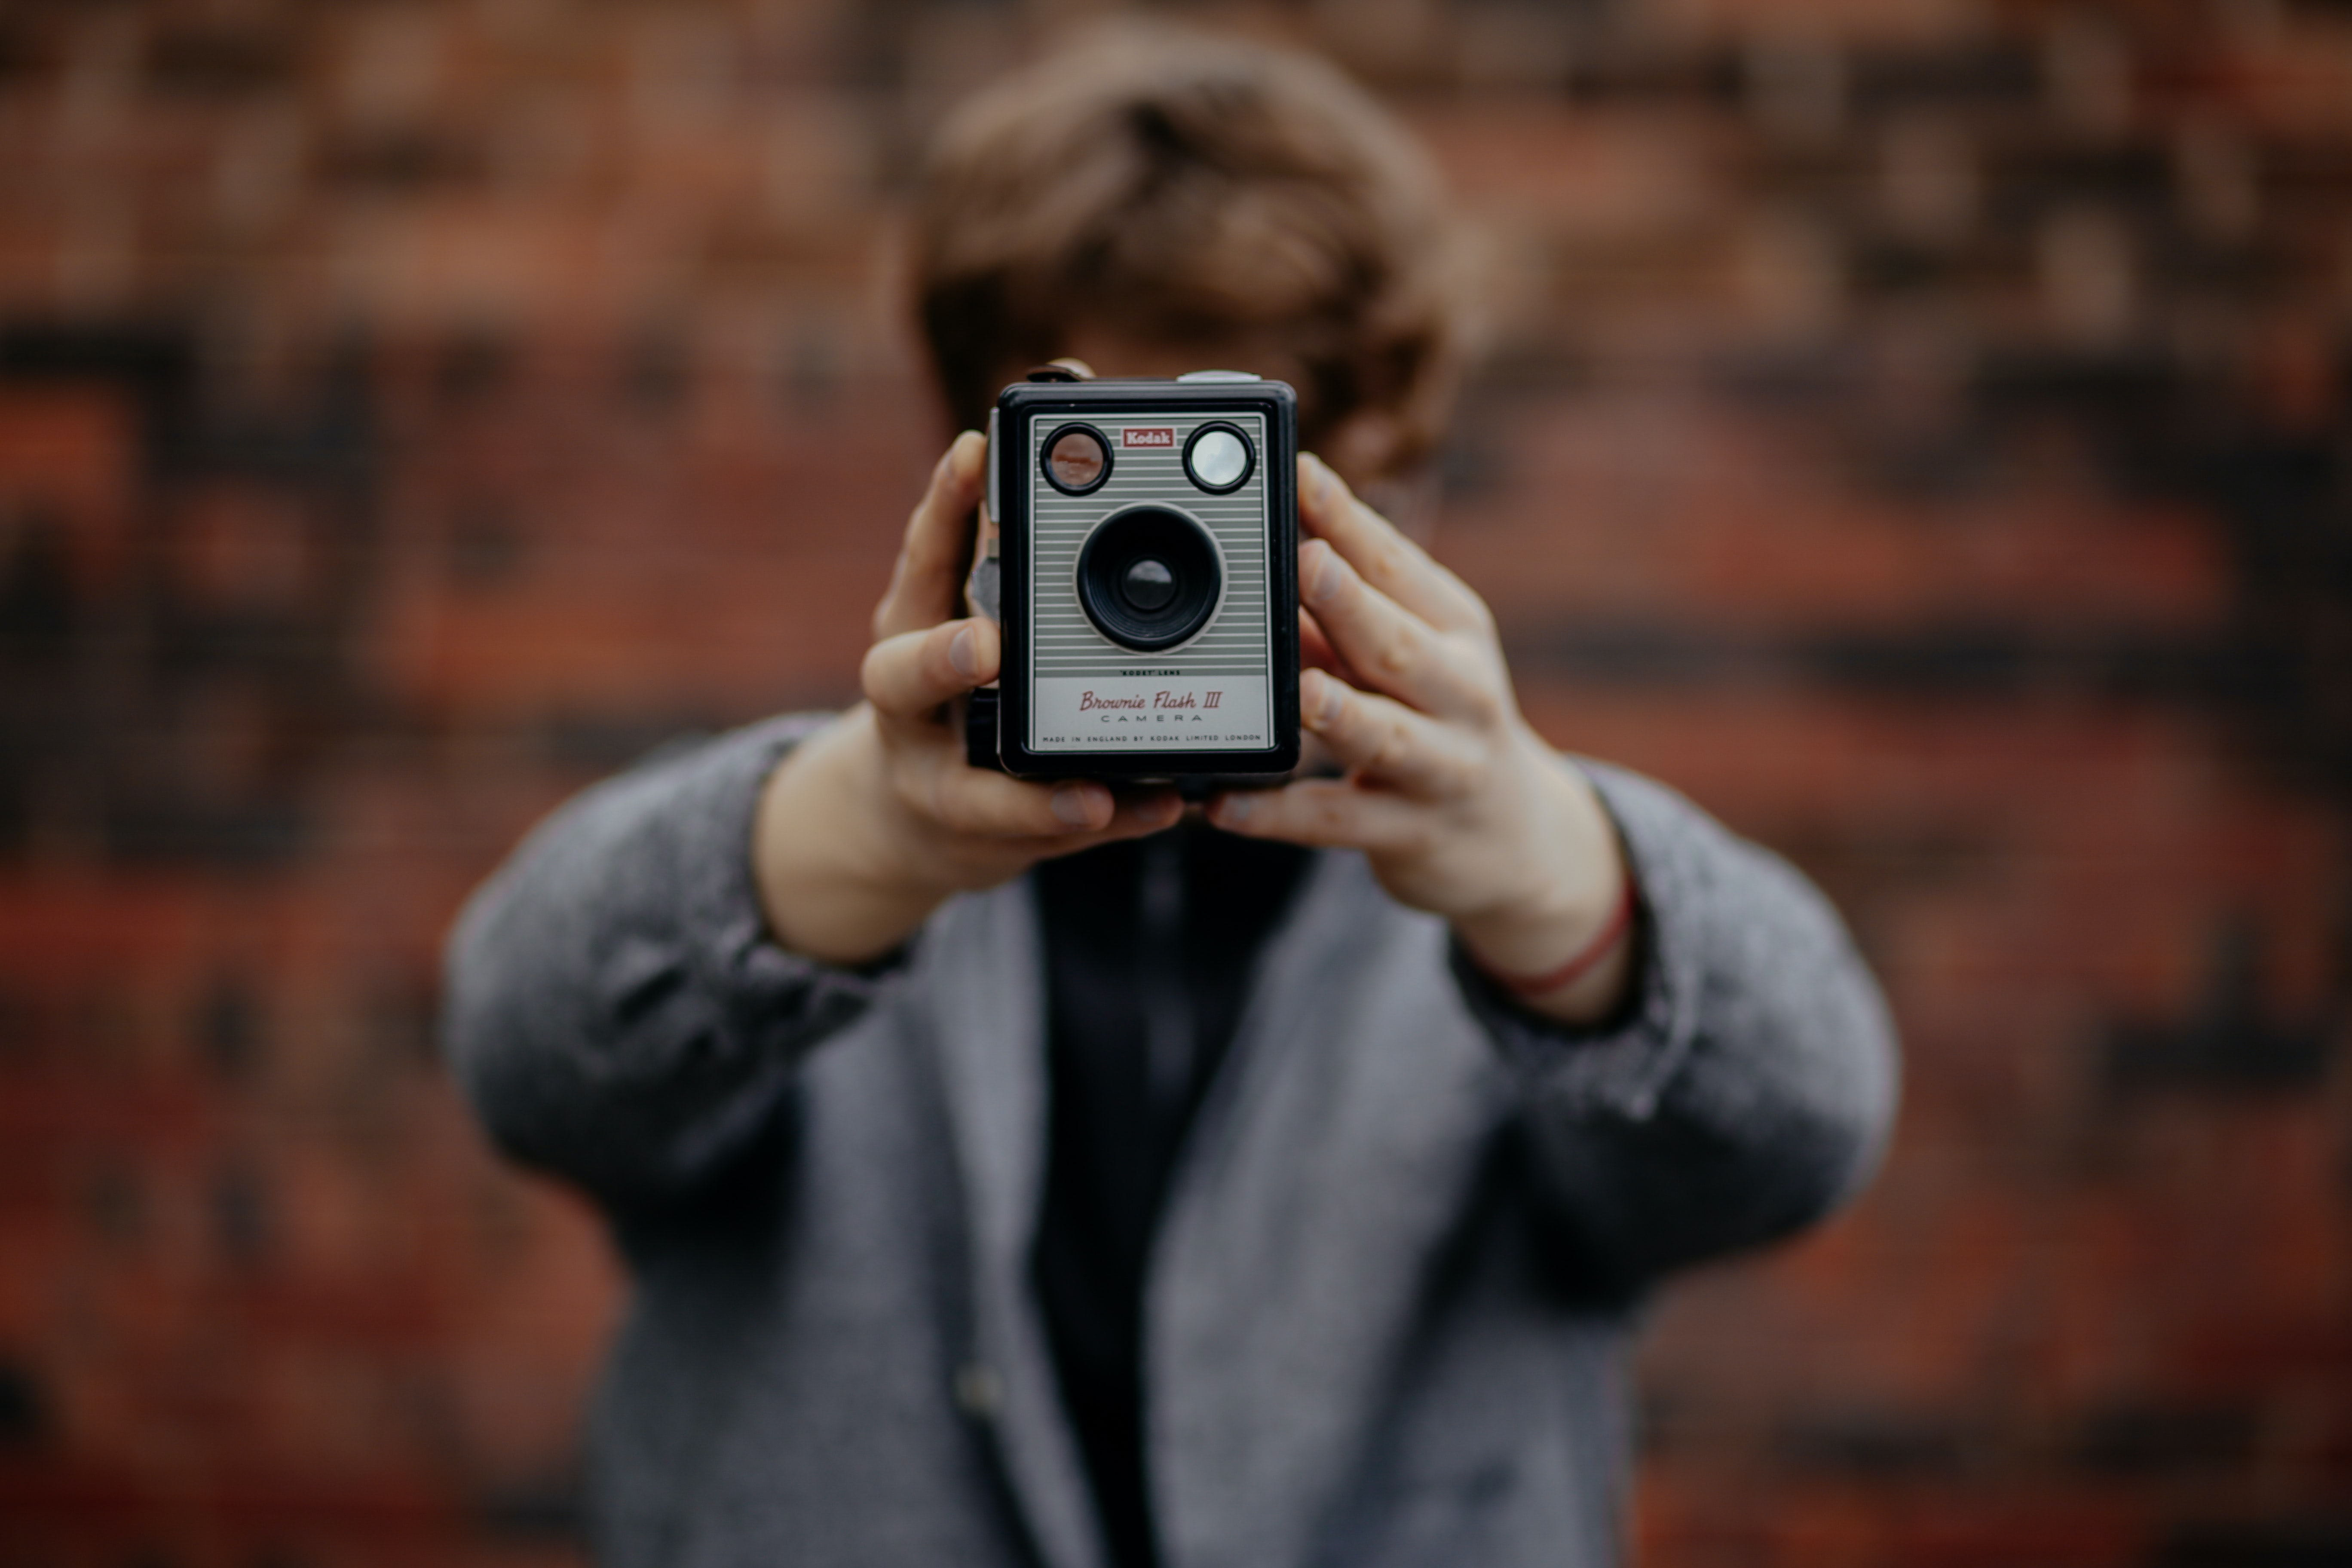 selective focus photography of person holding grey and black camera